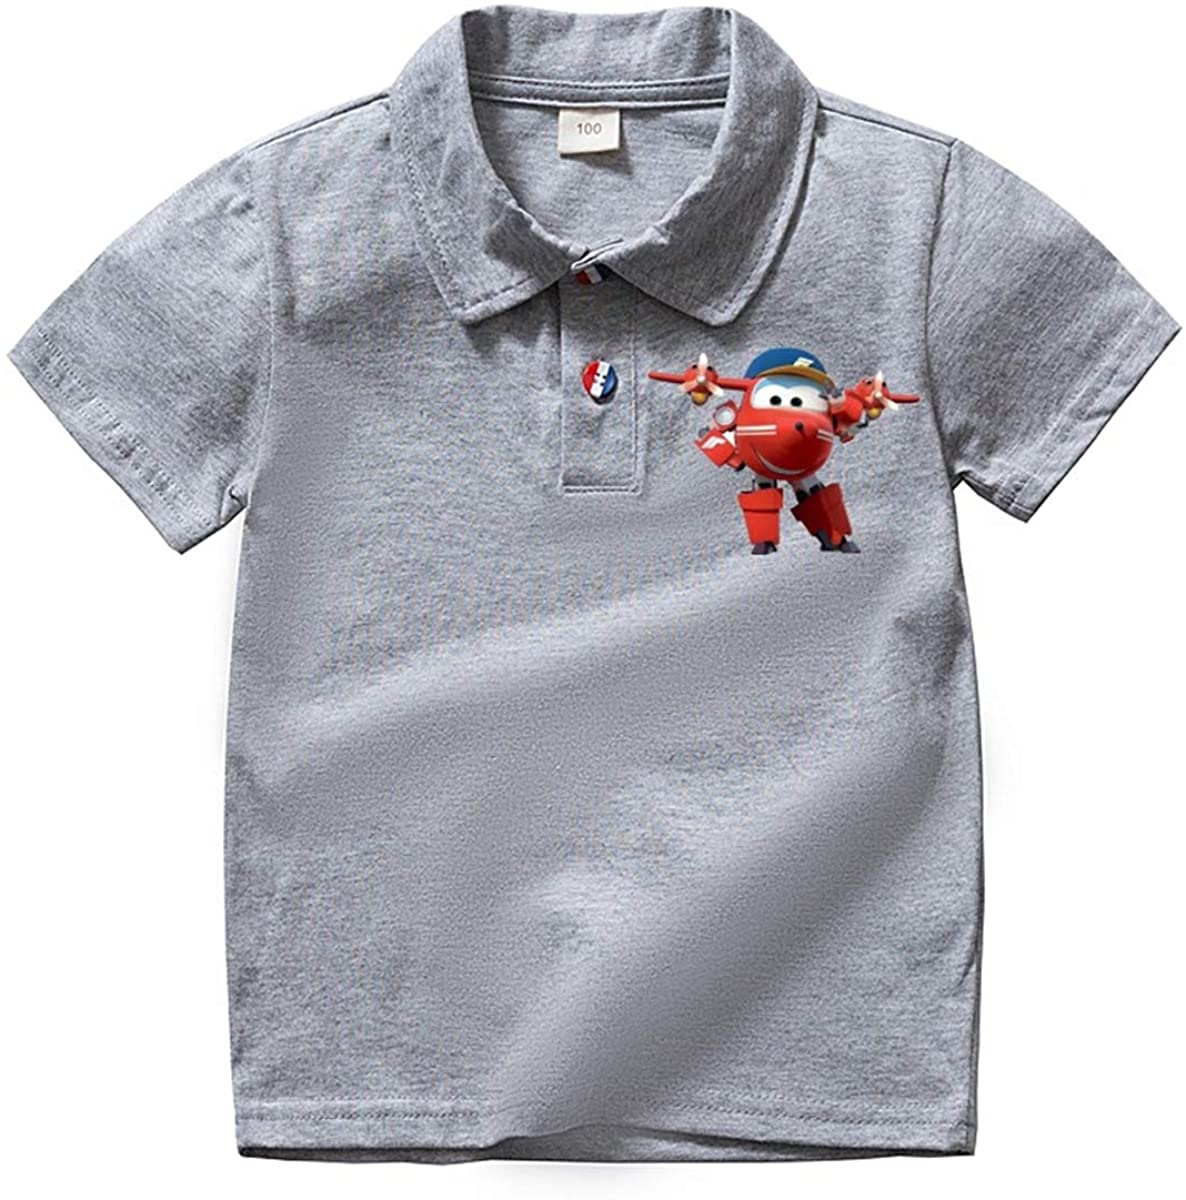 Fashion-zone Super Wings Polo Shirts for Boys and Girls Summer 100% Cotton Tees for Kids